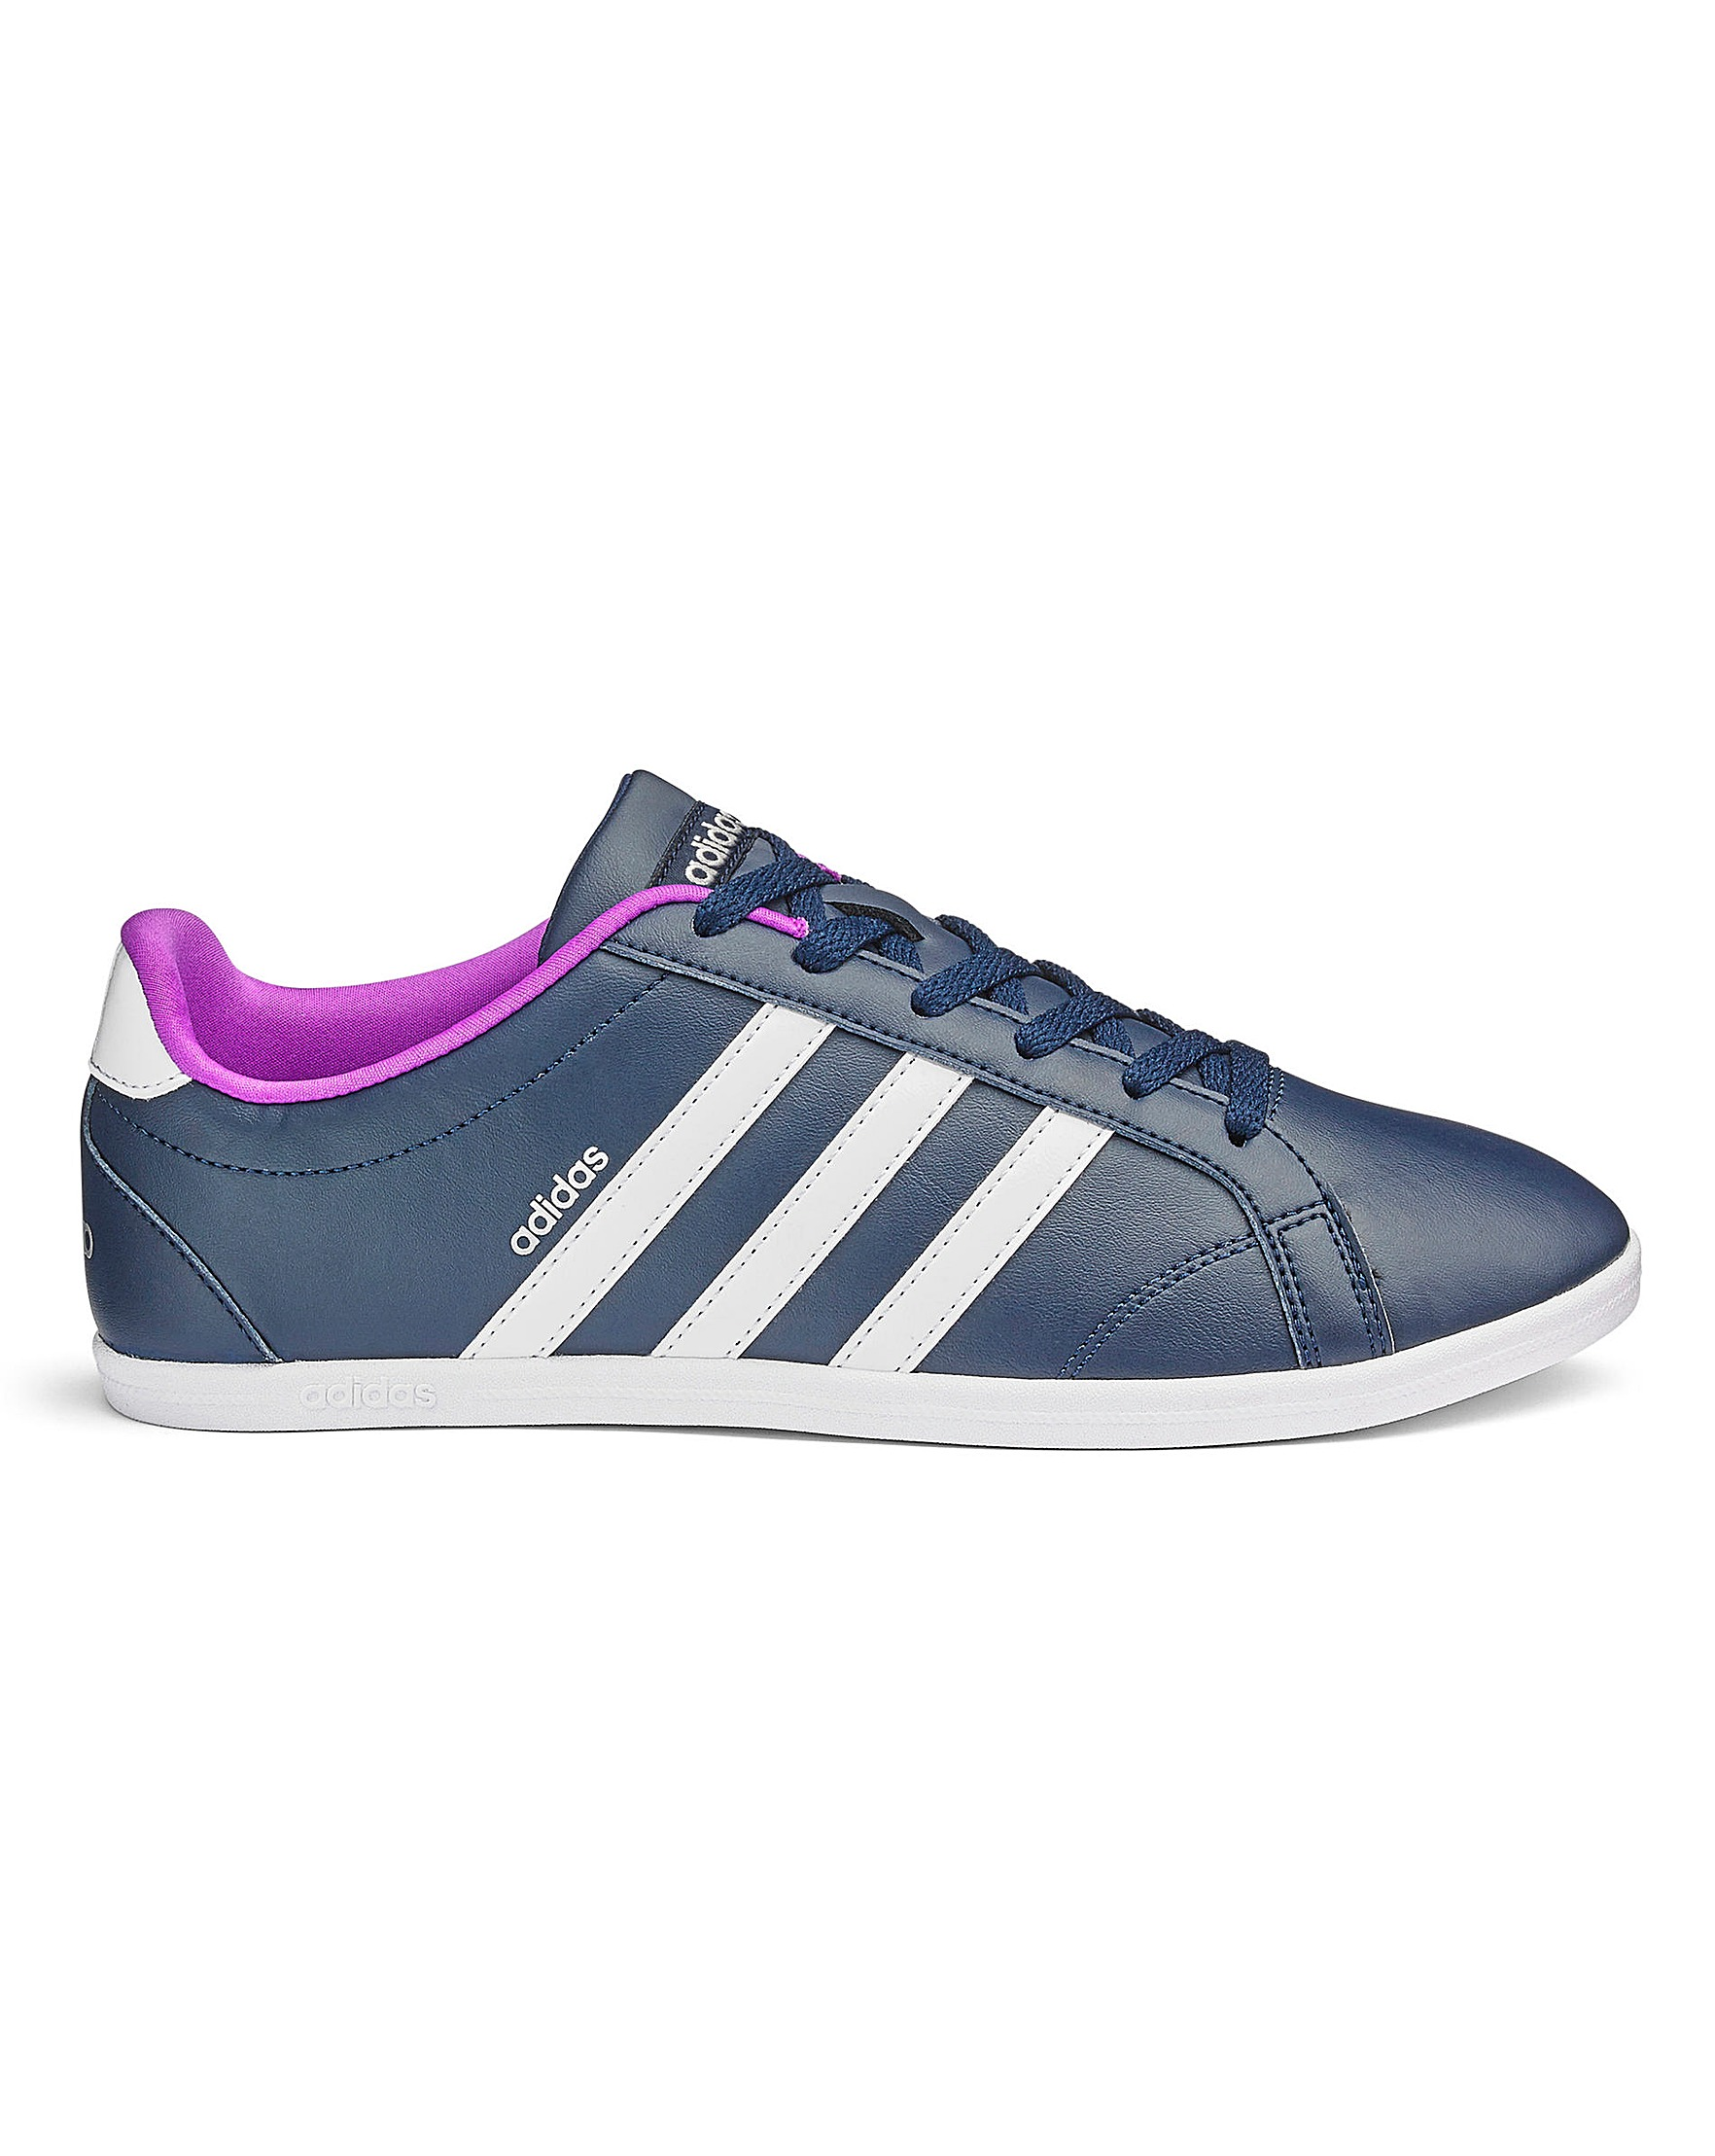 hot new products detailed look best supplier amazon adidas neo label coneo qt vs shadow pink 53b86 1903e